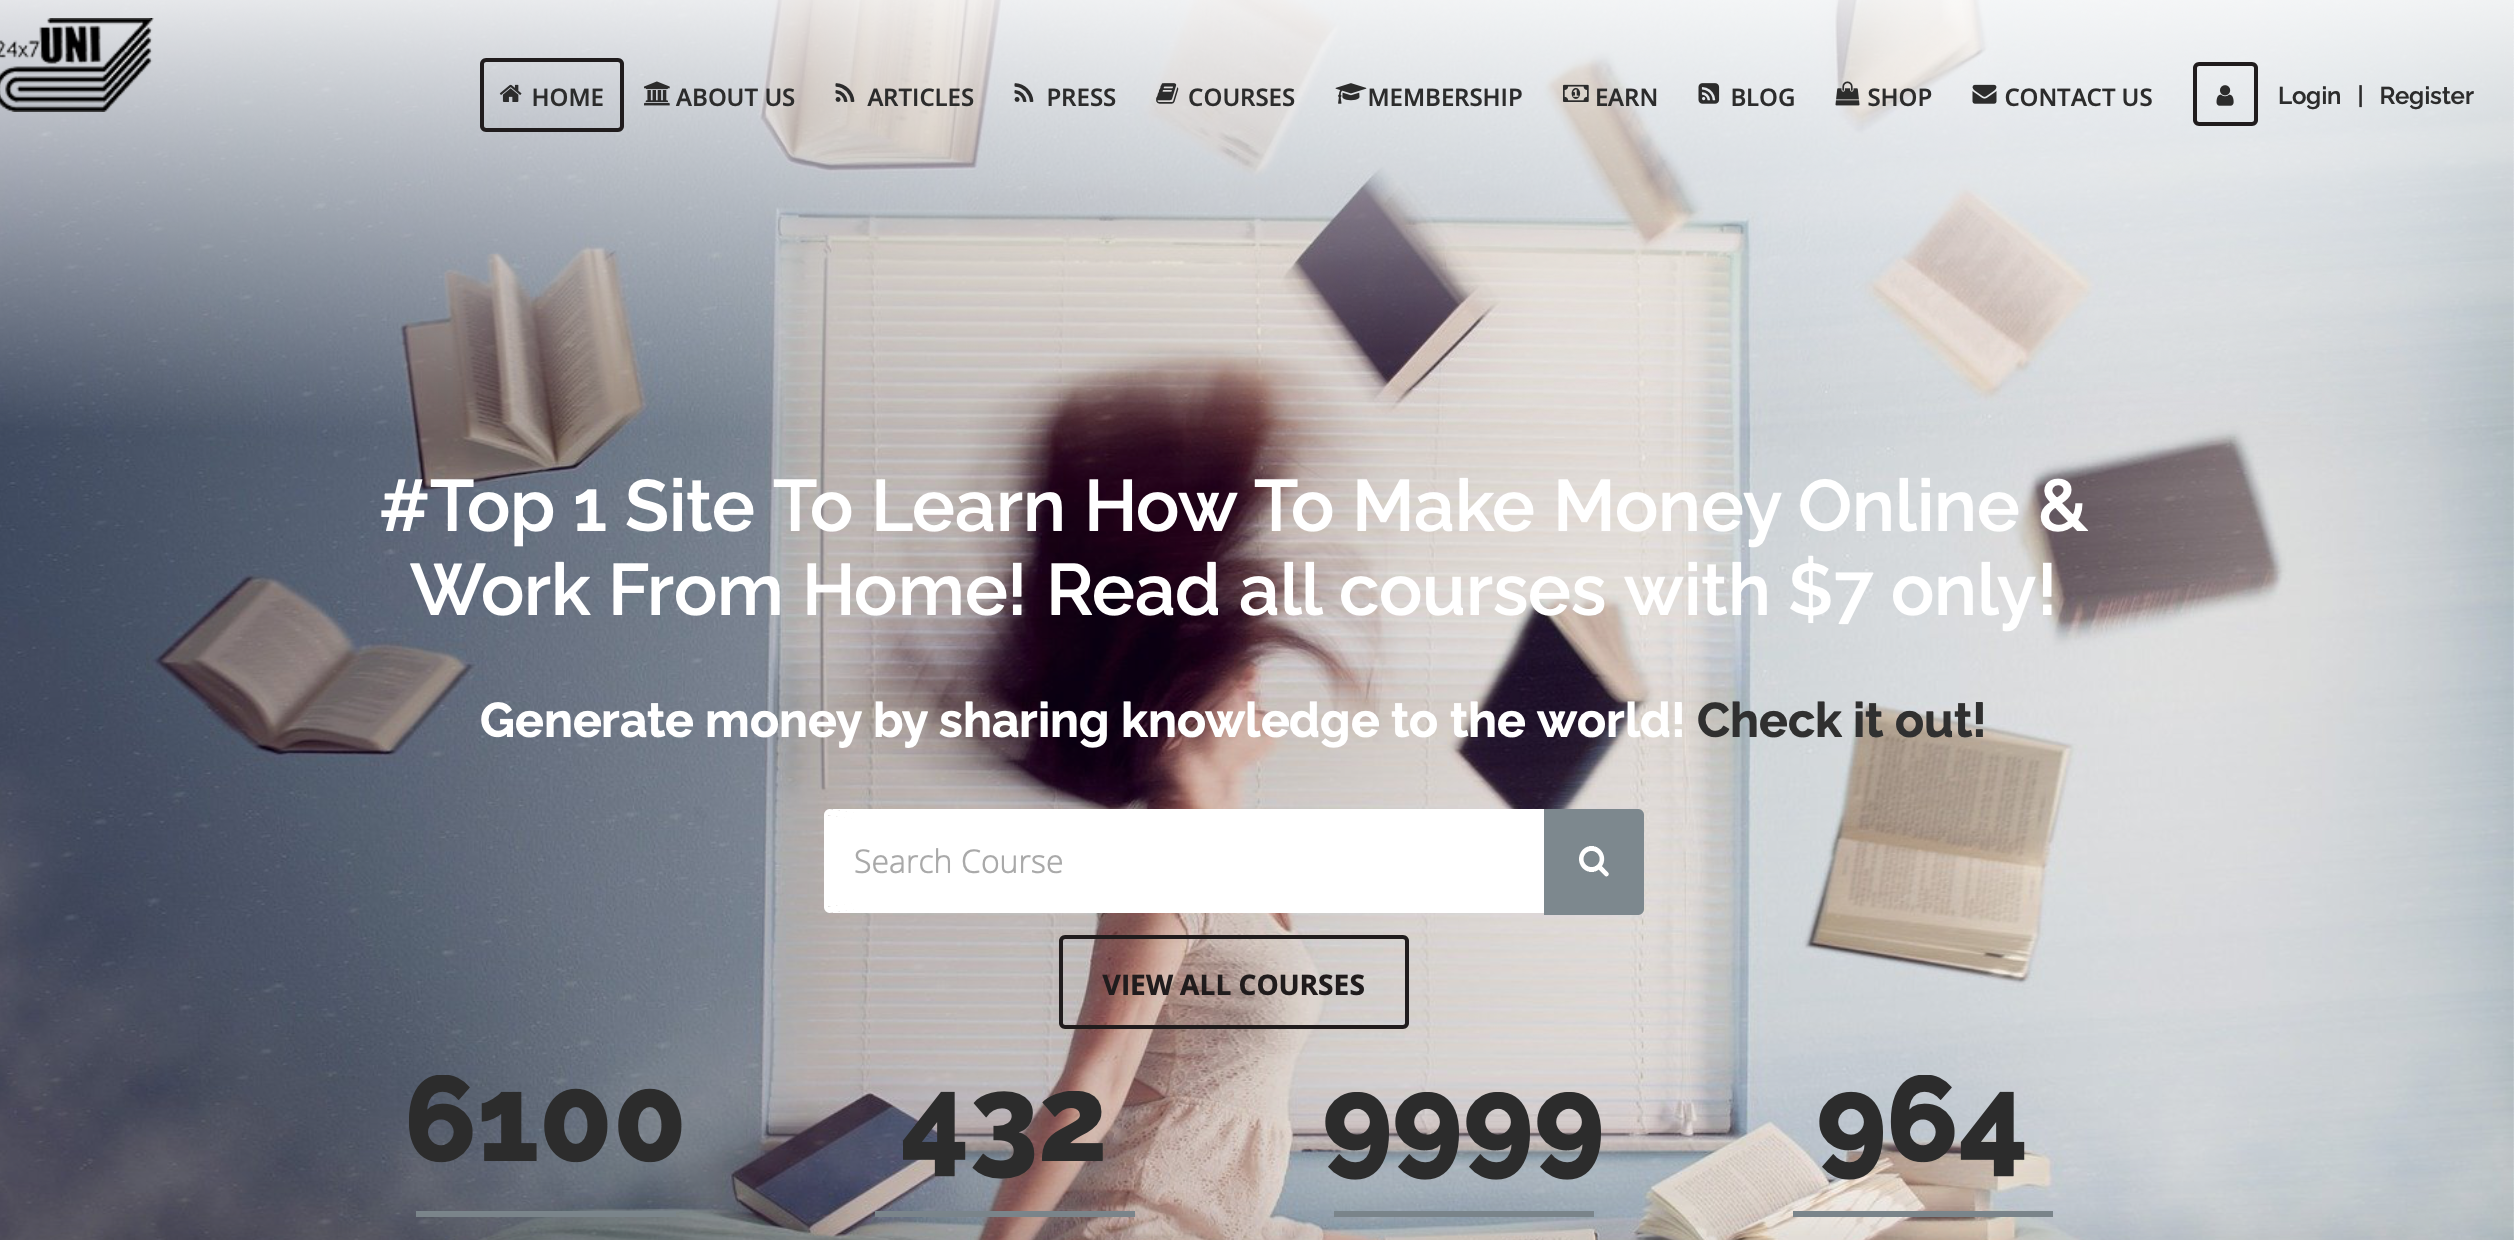 800+ Online Course for 1 year-learn make money online & work from home